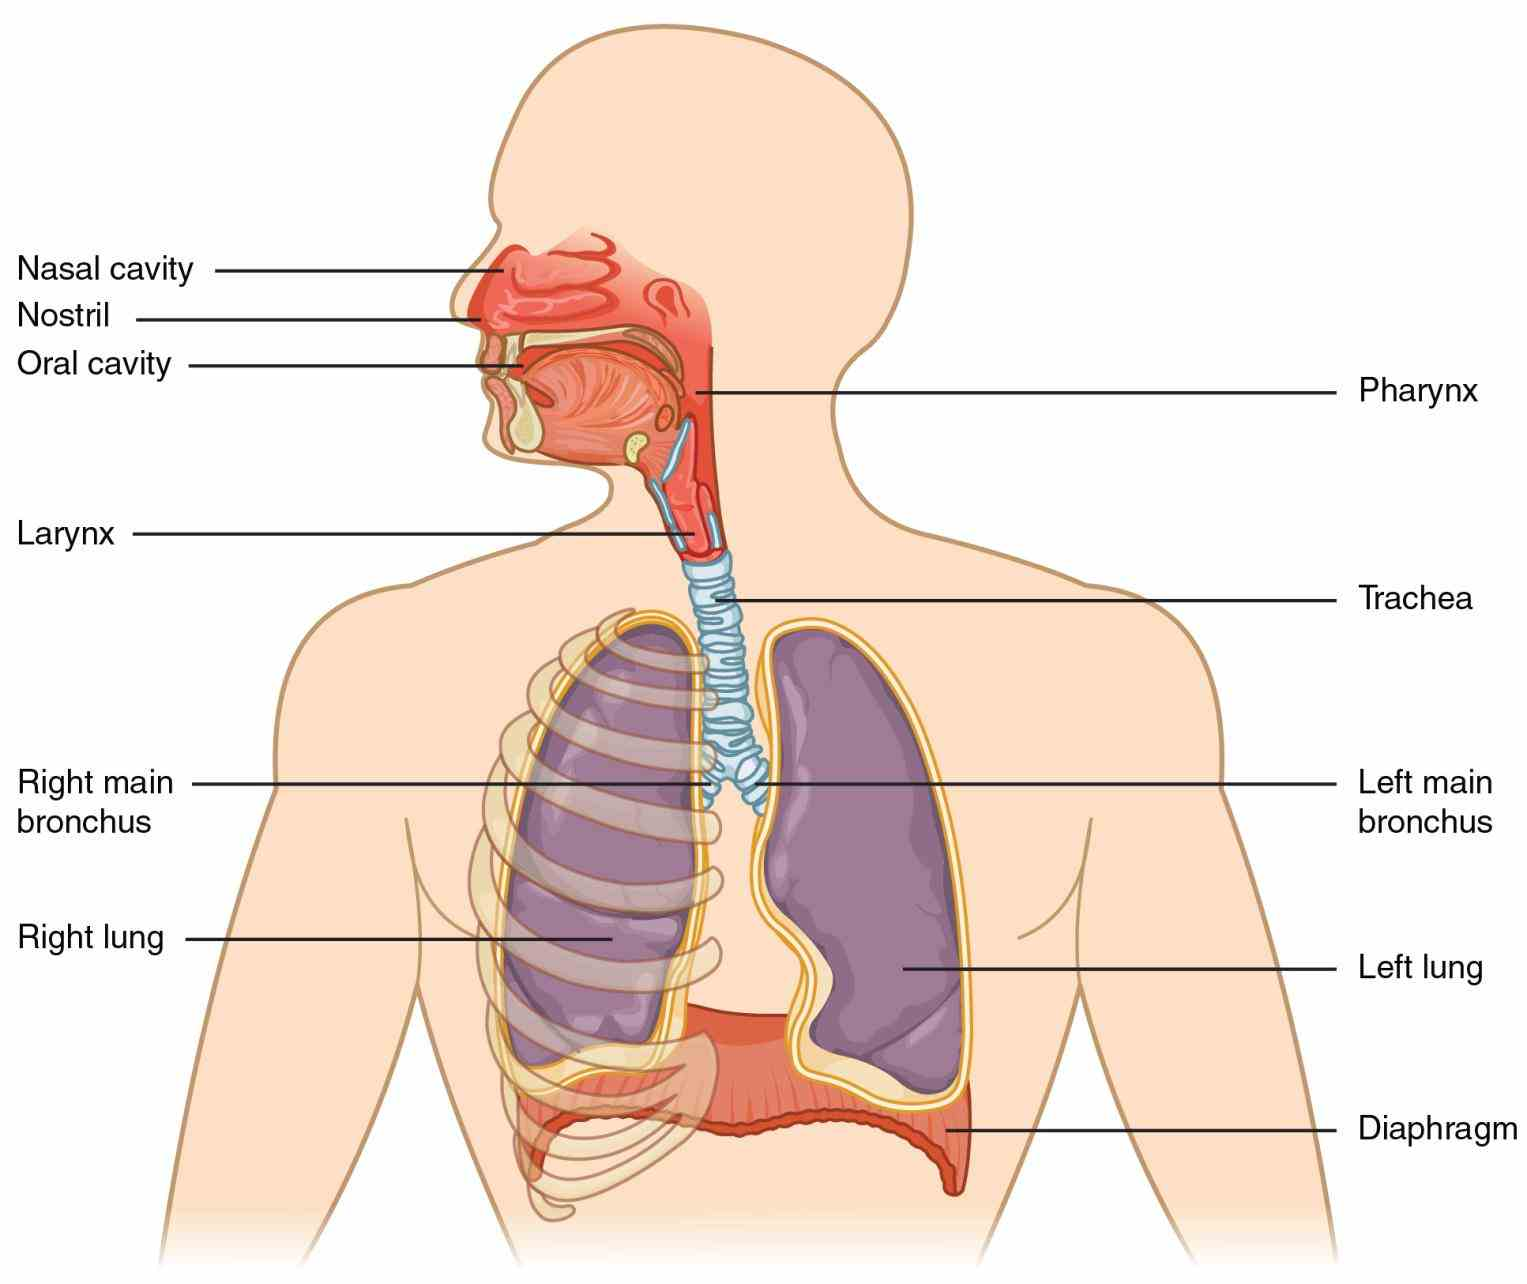 de Major Organs Of The Body And Their Functions mar the endocrine system consists of eight major glands